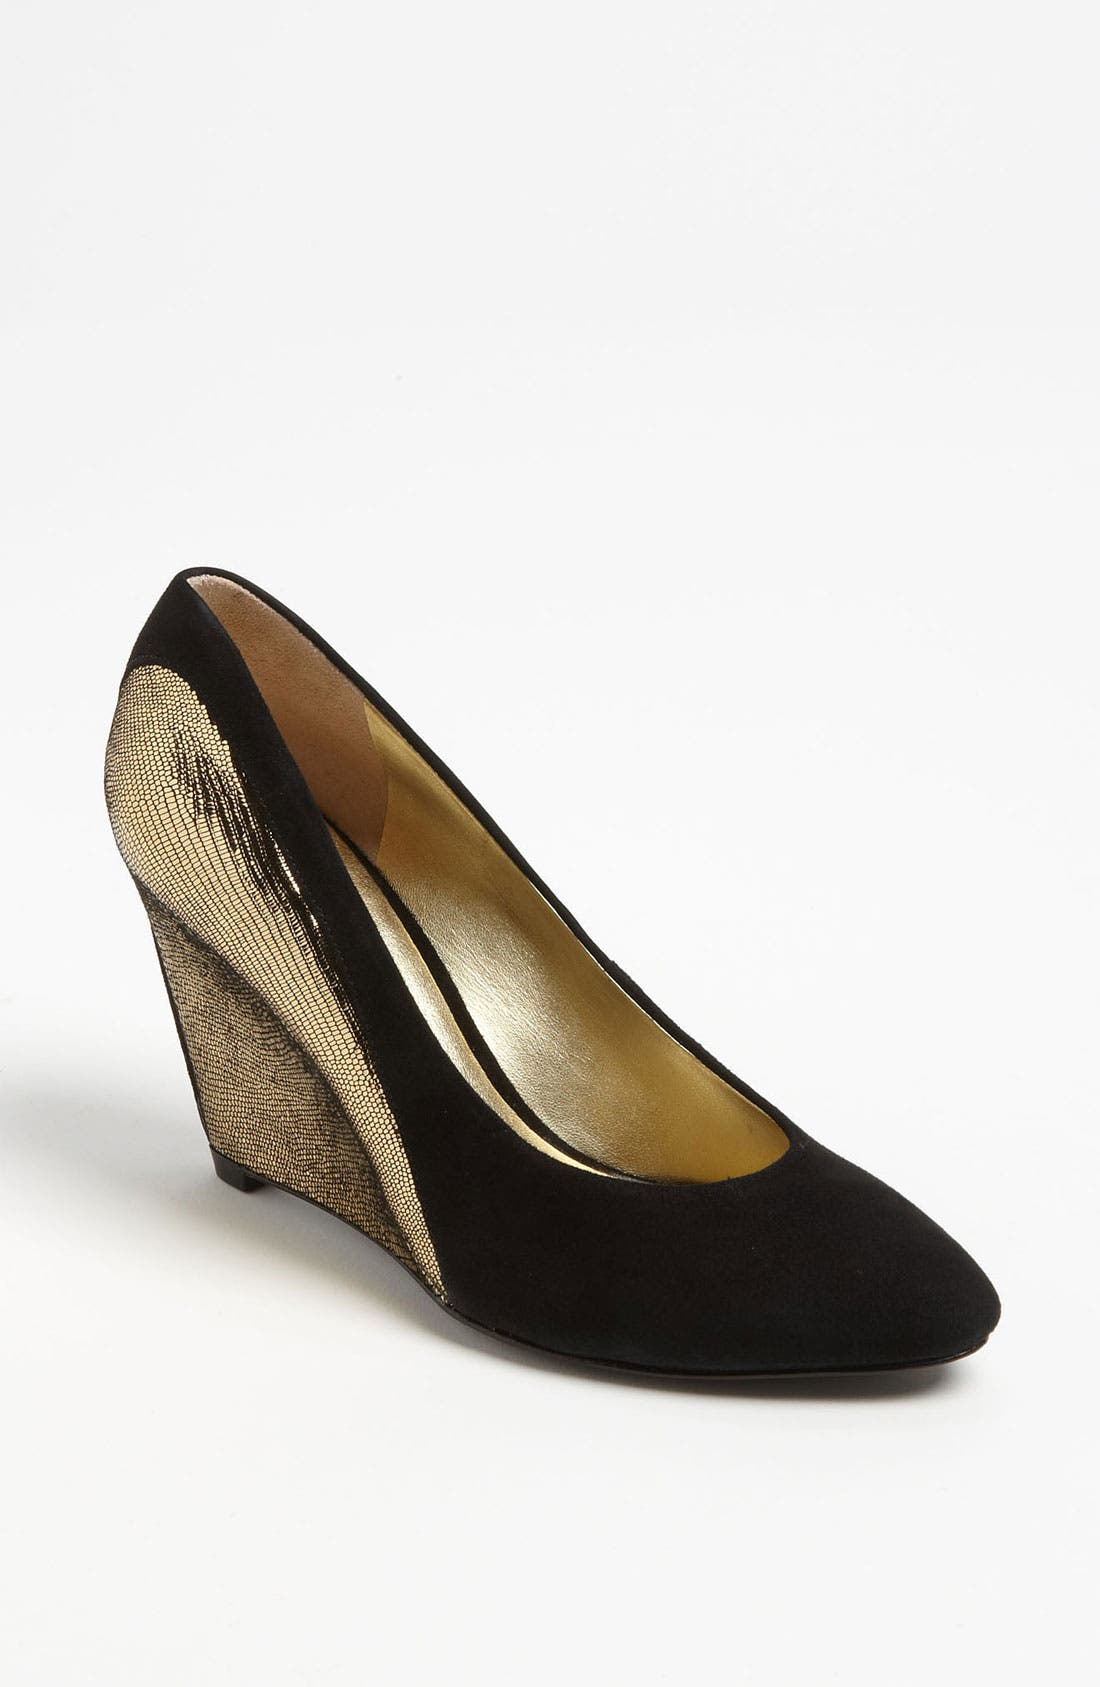 Alternate Image 1 Selected - Belle by Sigerson Morrison 'Footsie' Wedge